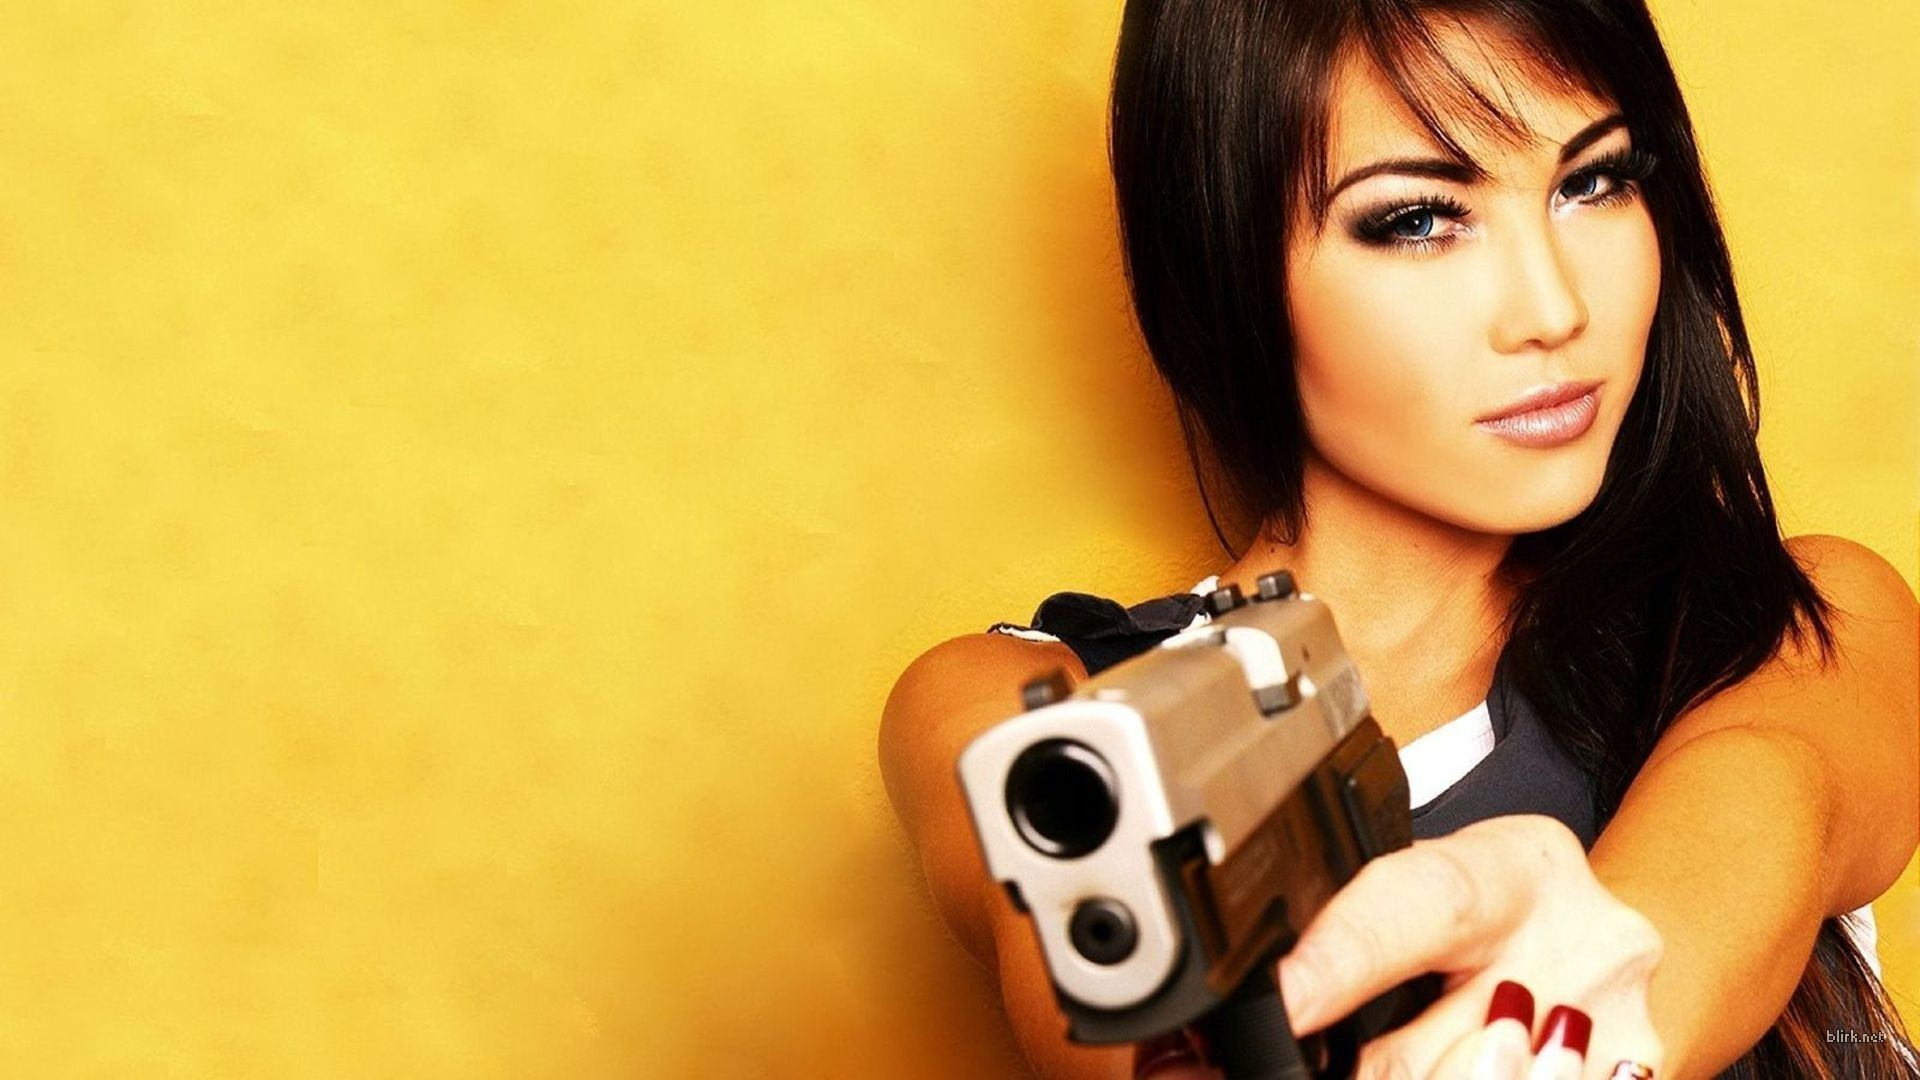 HD Wallpaper of Wallpapers Savers Screen Miscellaneous Gun Girls Babes Brunette Celebrity General, Desktop Wallpaper